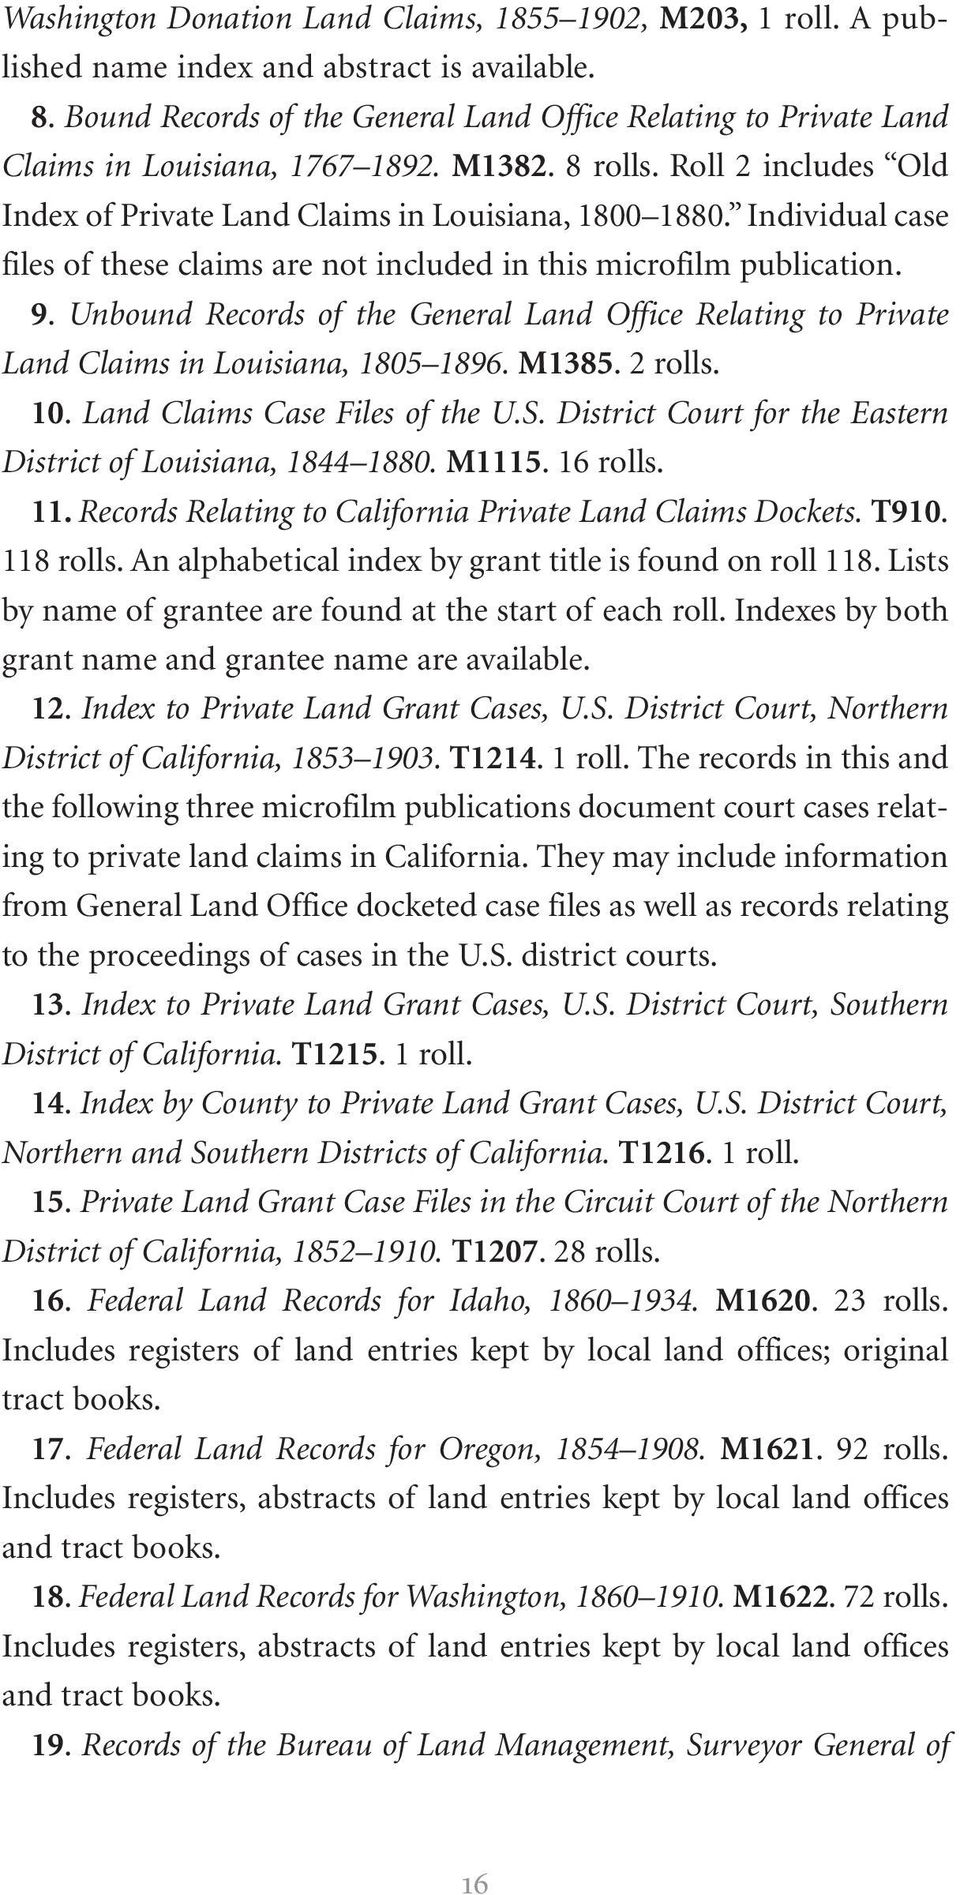 Individual case files of these claims are not included in this microfilm publication. 9. Unbound Records of the General Land Office Relating to Private Land Claims in Louisiana, 1805 1896. M1385.